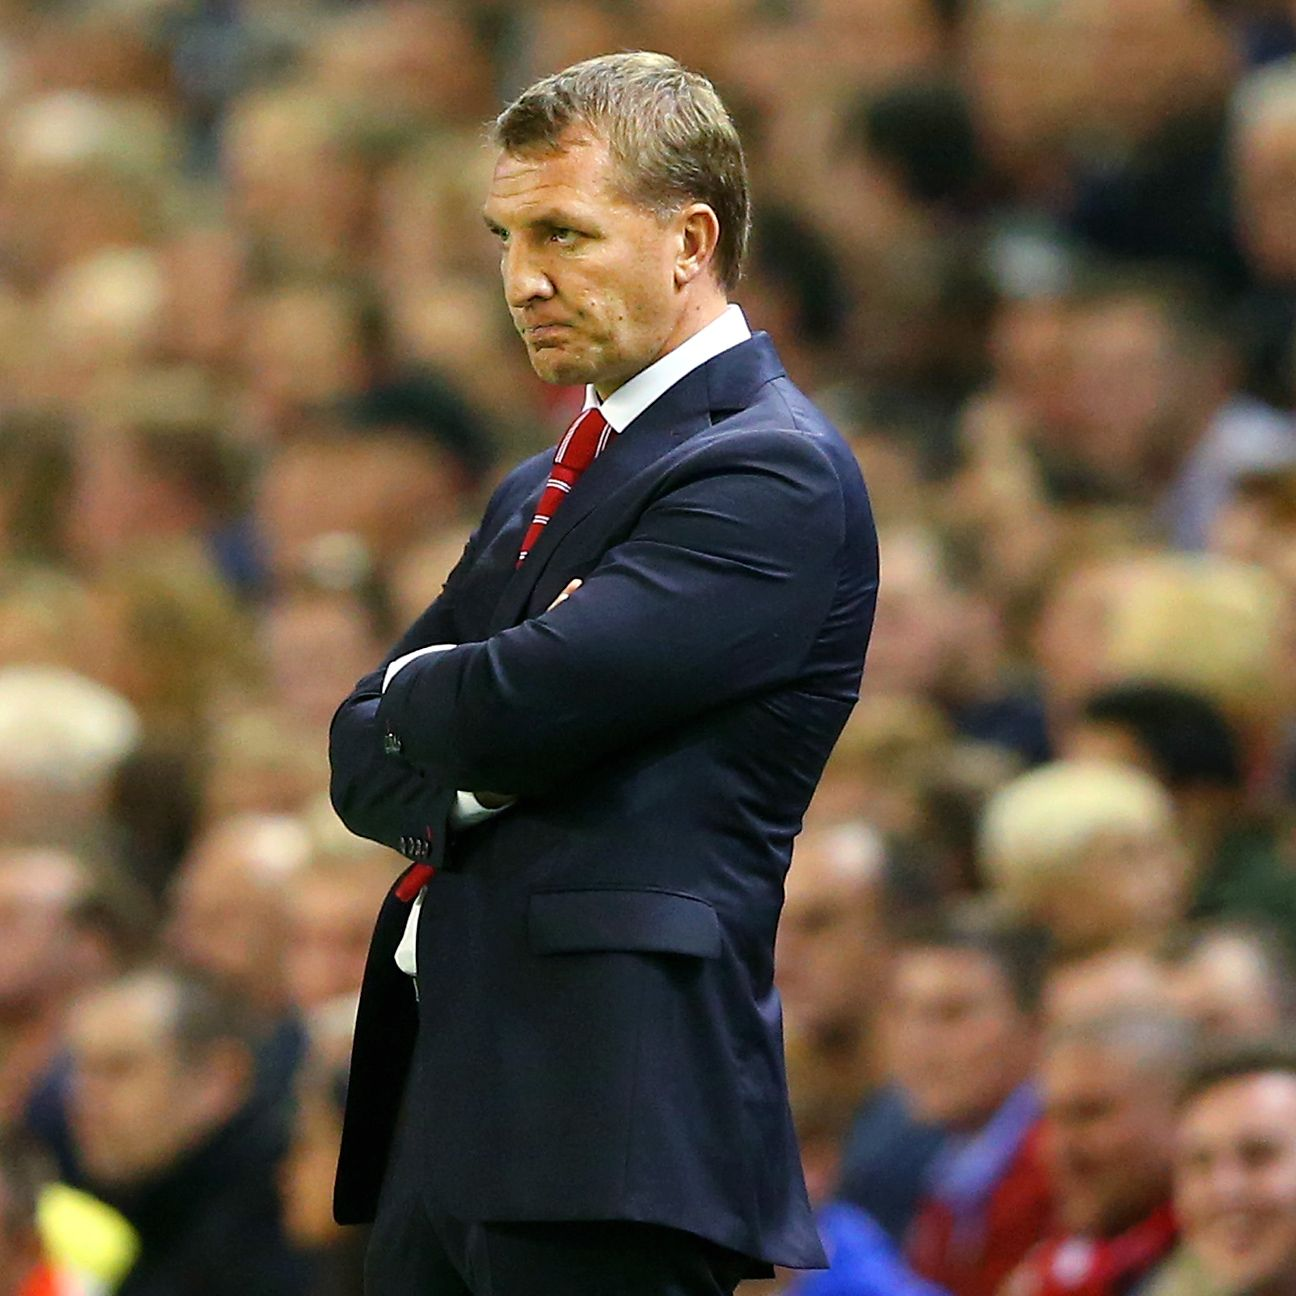 Injuries have exacted a heavy toll on Brendan Rodgers' Liverpool early this season.